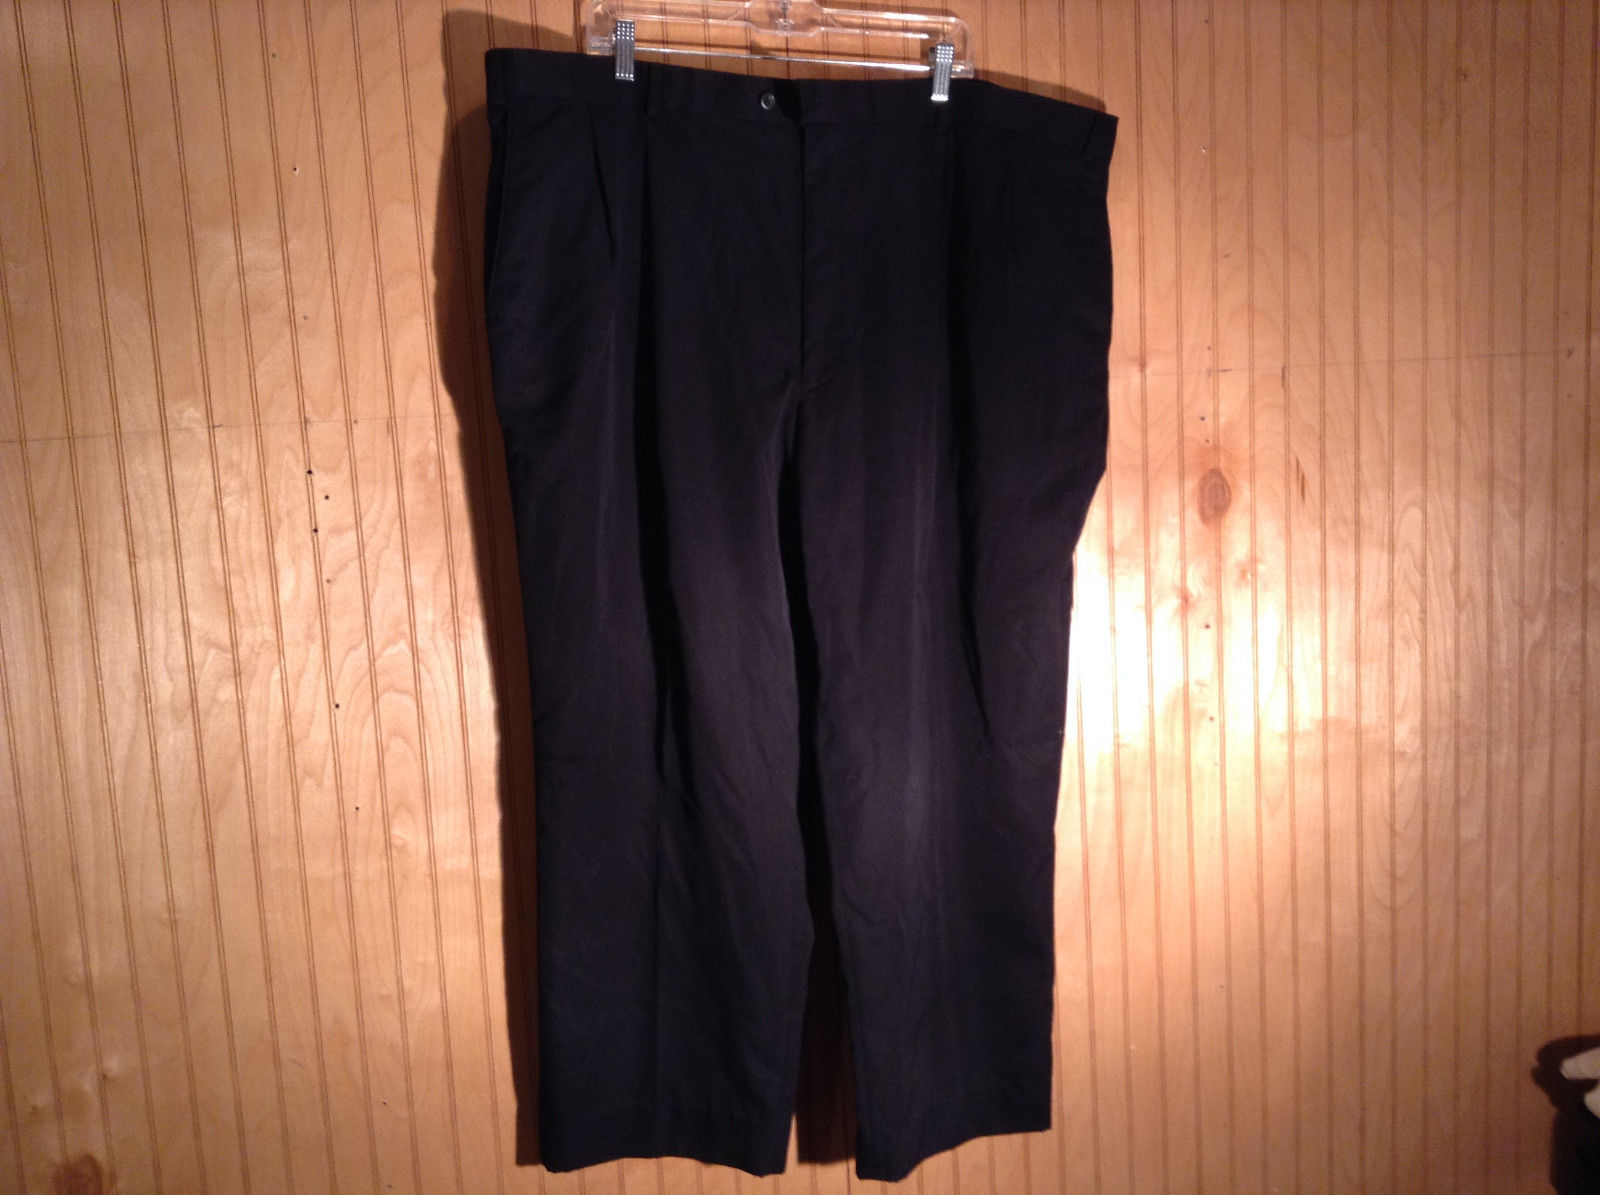 Black Dress Pants by Barrington Size 48 by 30 Zipper and Button Closure